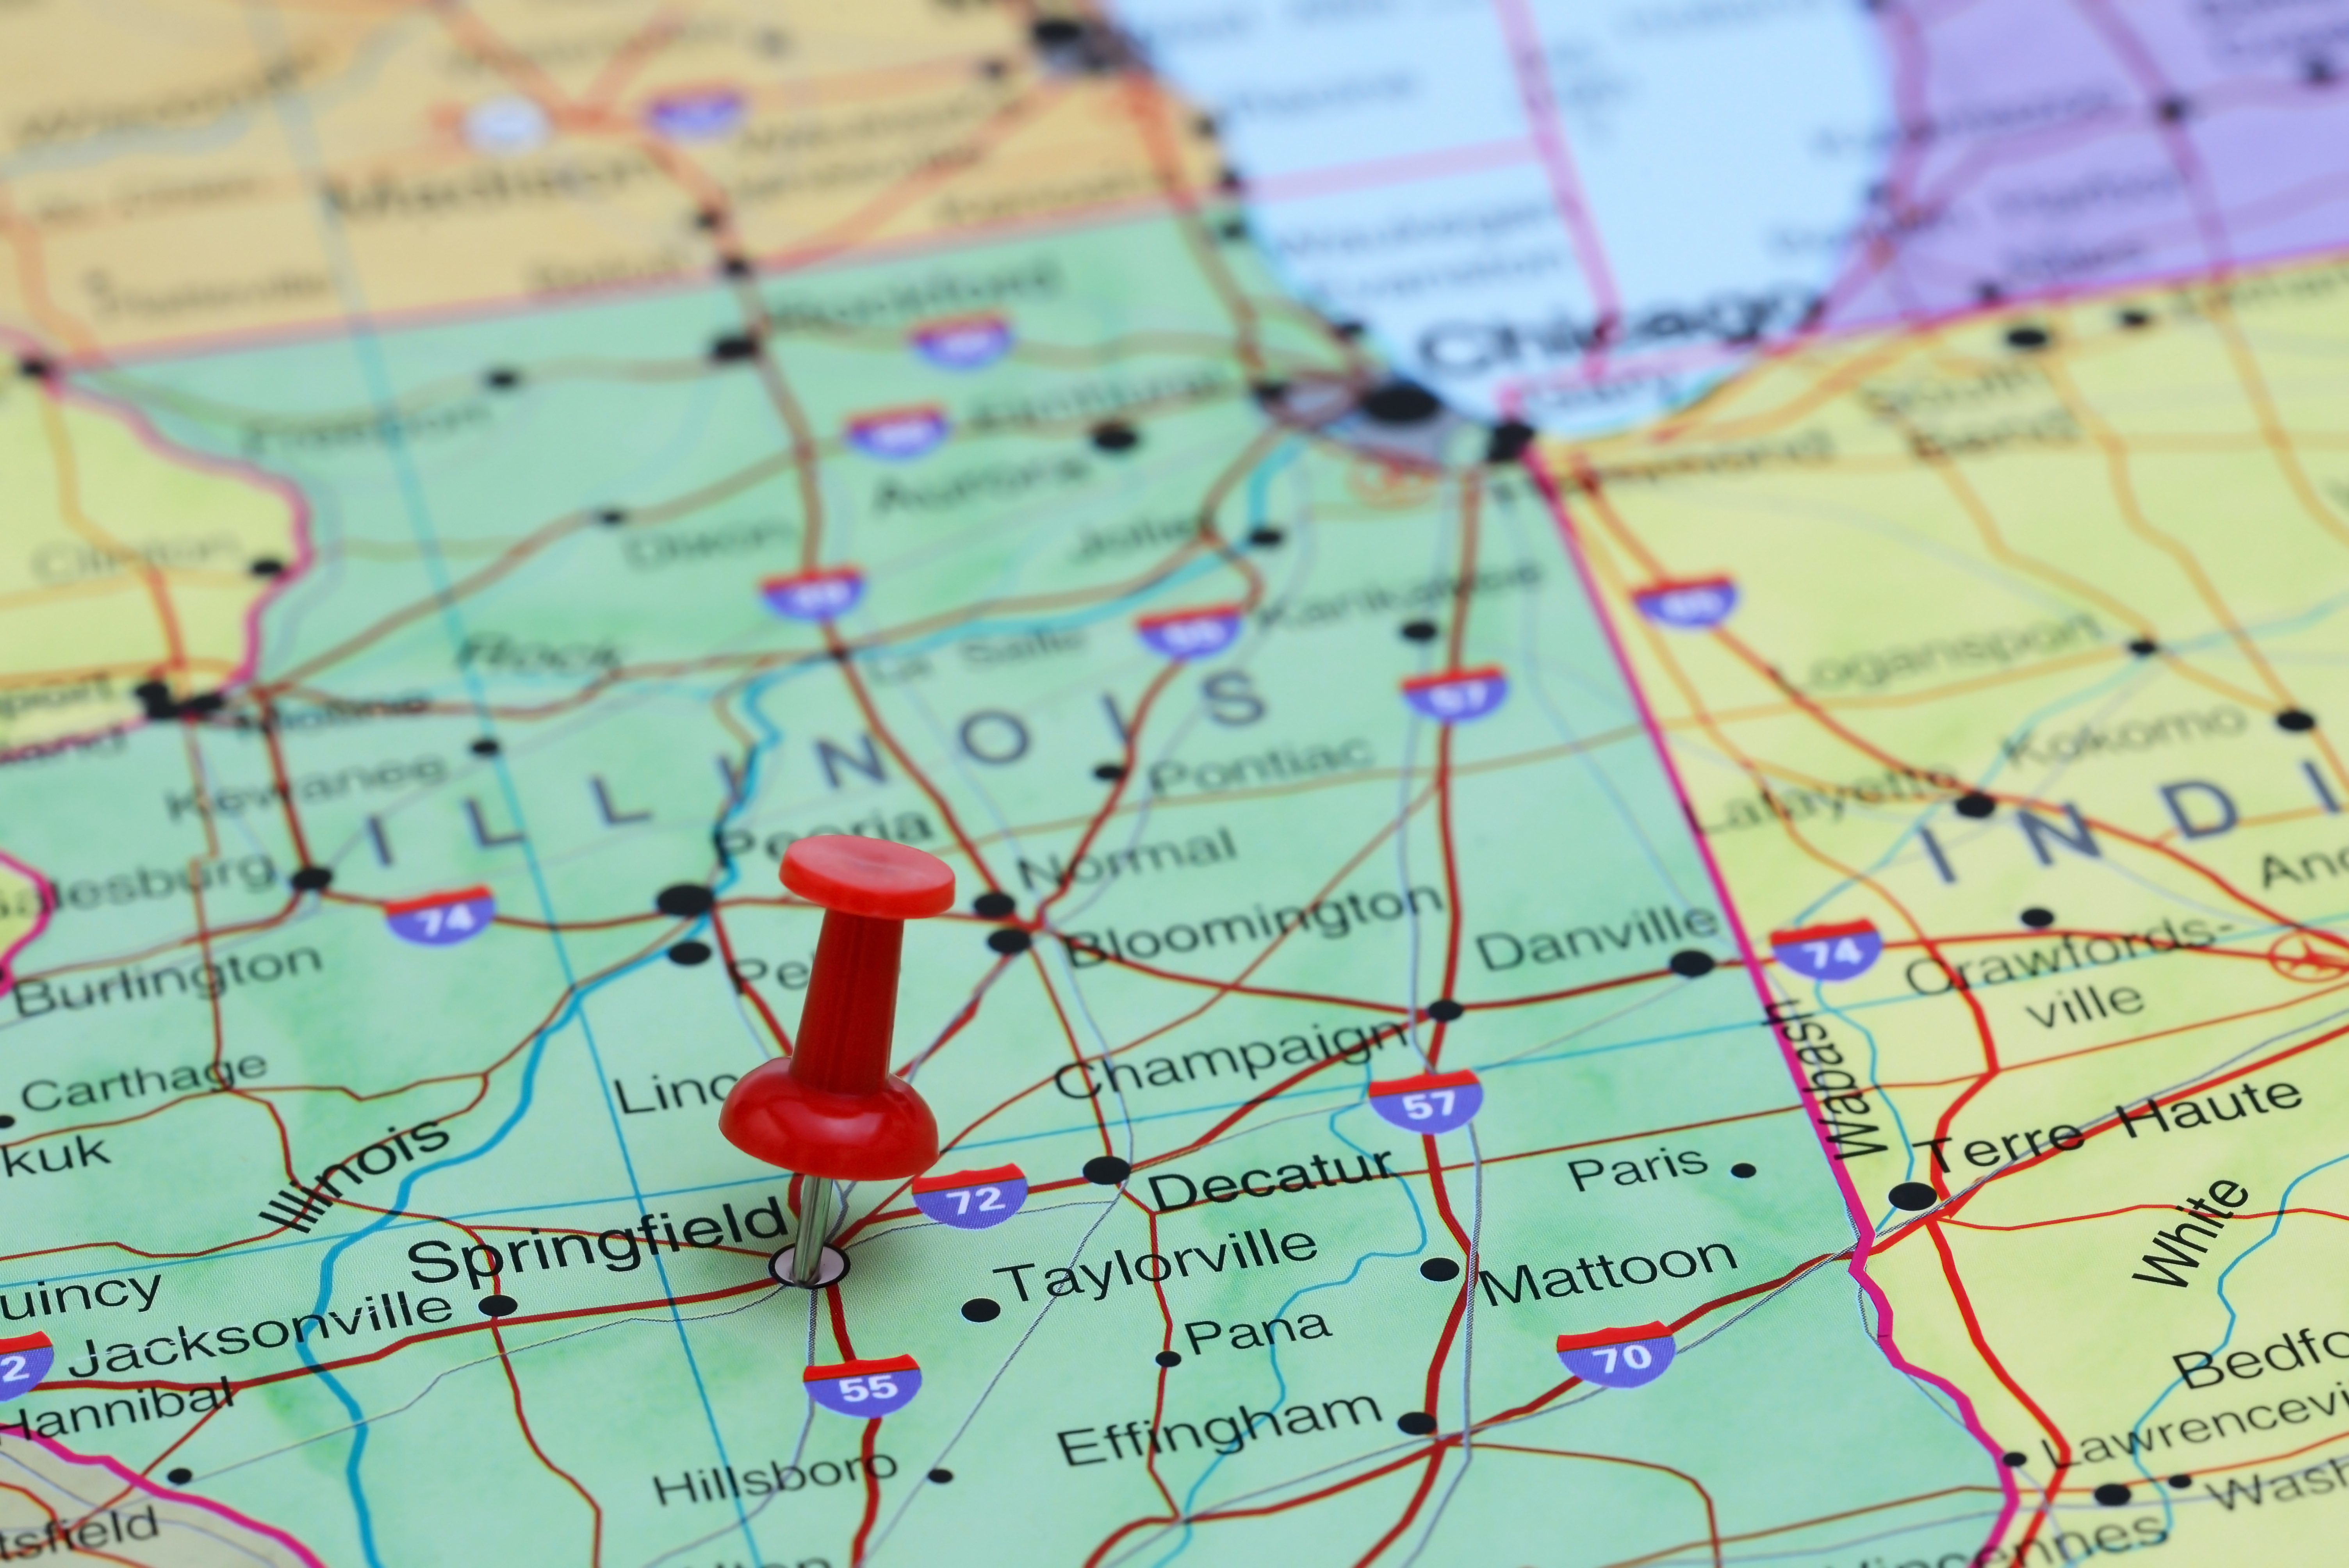 Use of Demand Response Reduces Energy Costs, Creates Jobs in Illinois